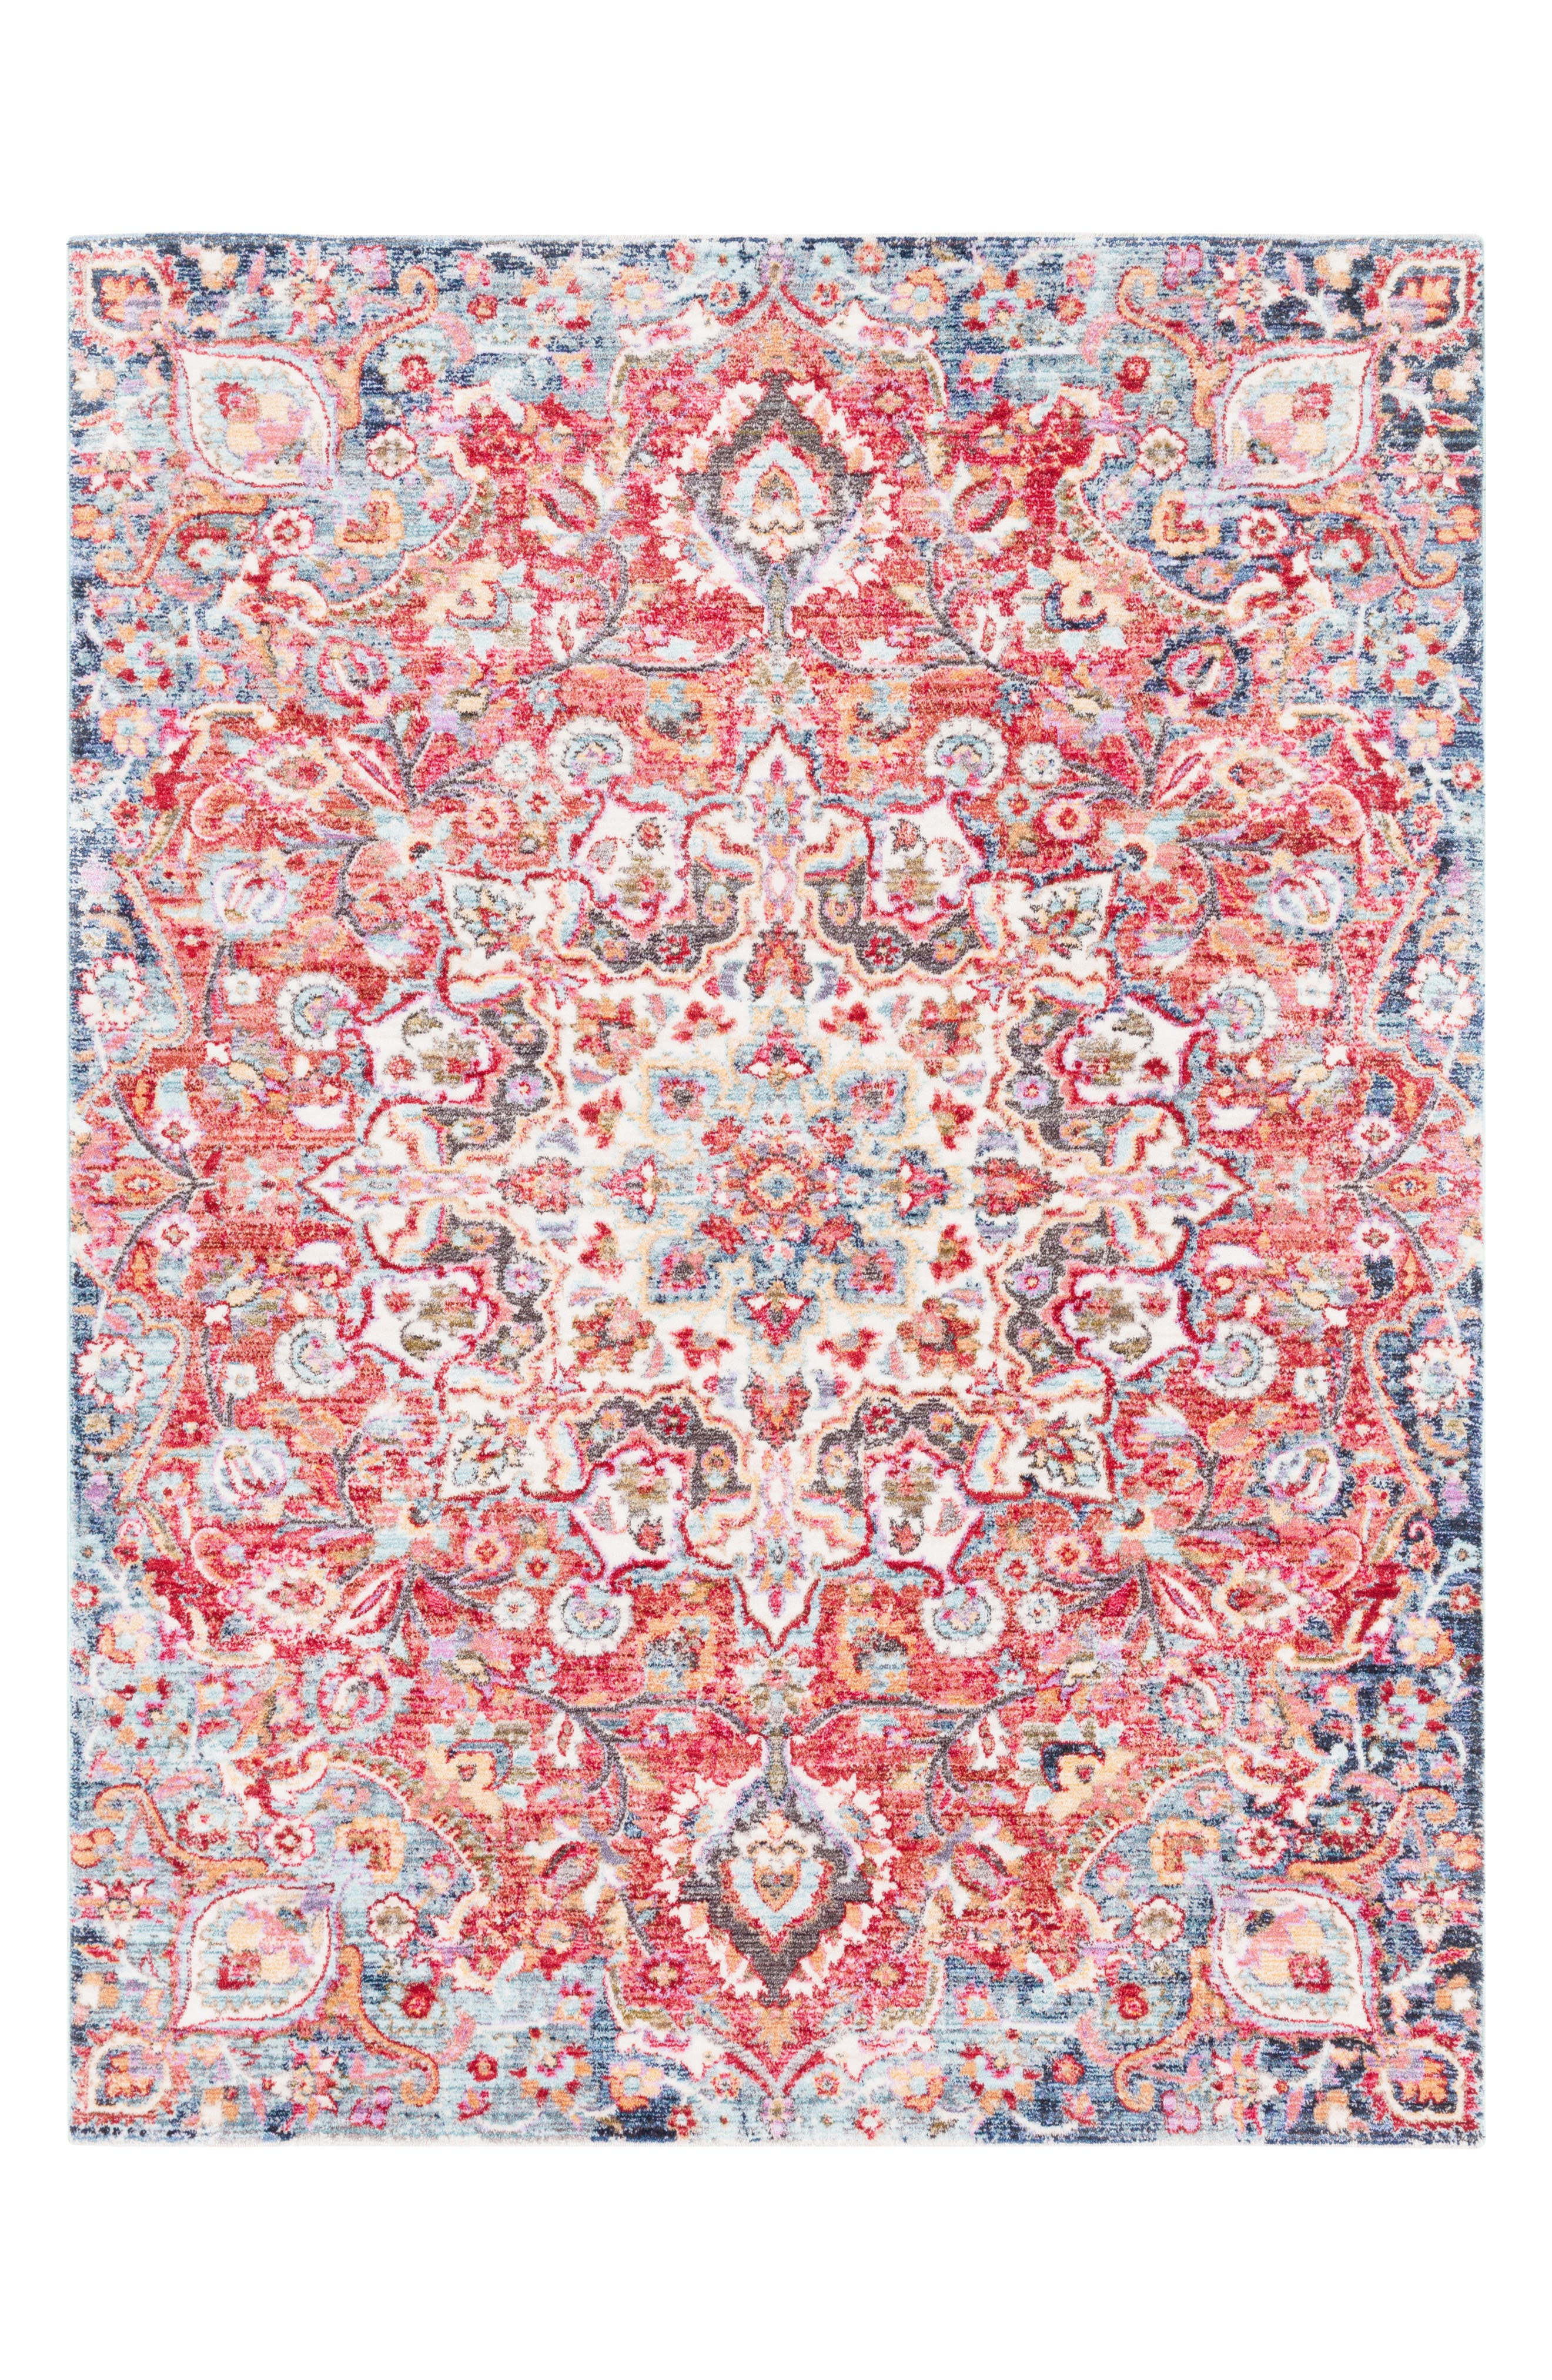 Rumi Area Rug,                         Main,                         color, Red